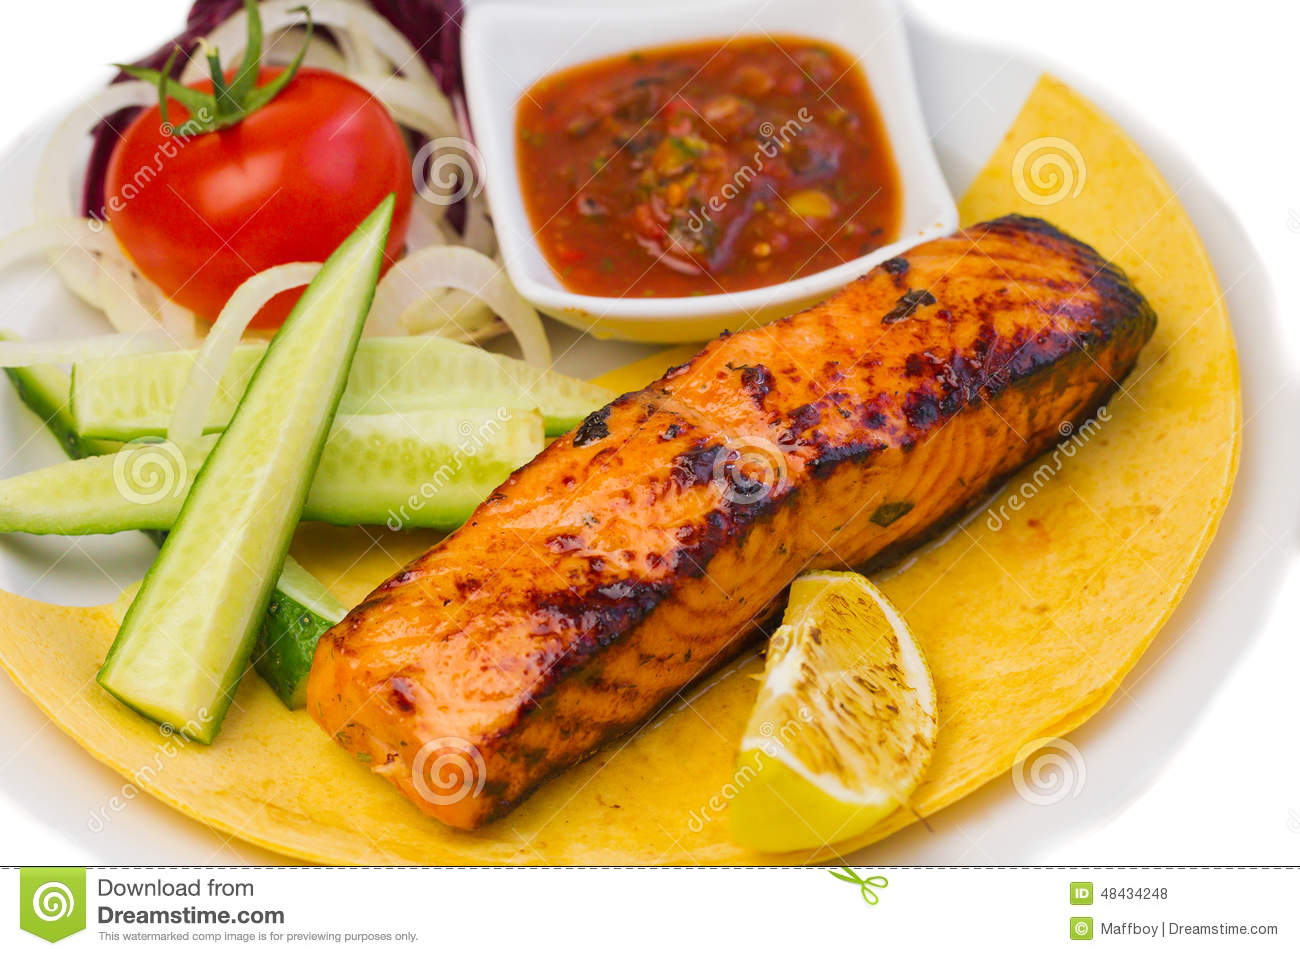 Grilled Fish Steak On The Plate Stock Photo - Image: 48434248